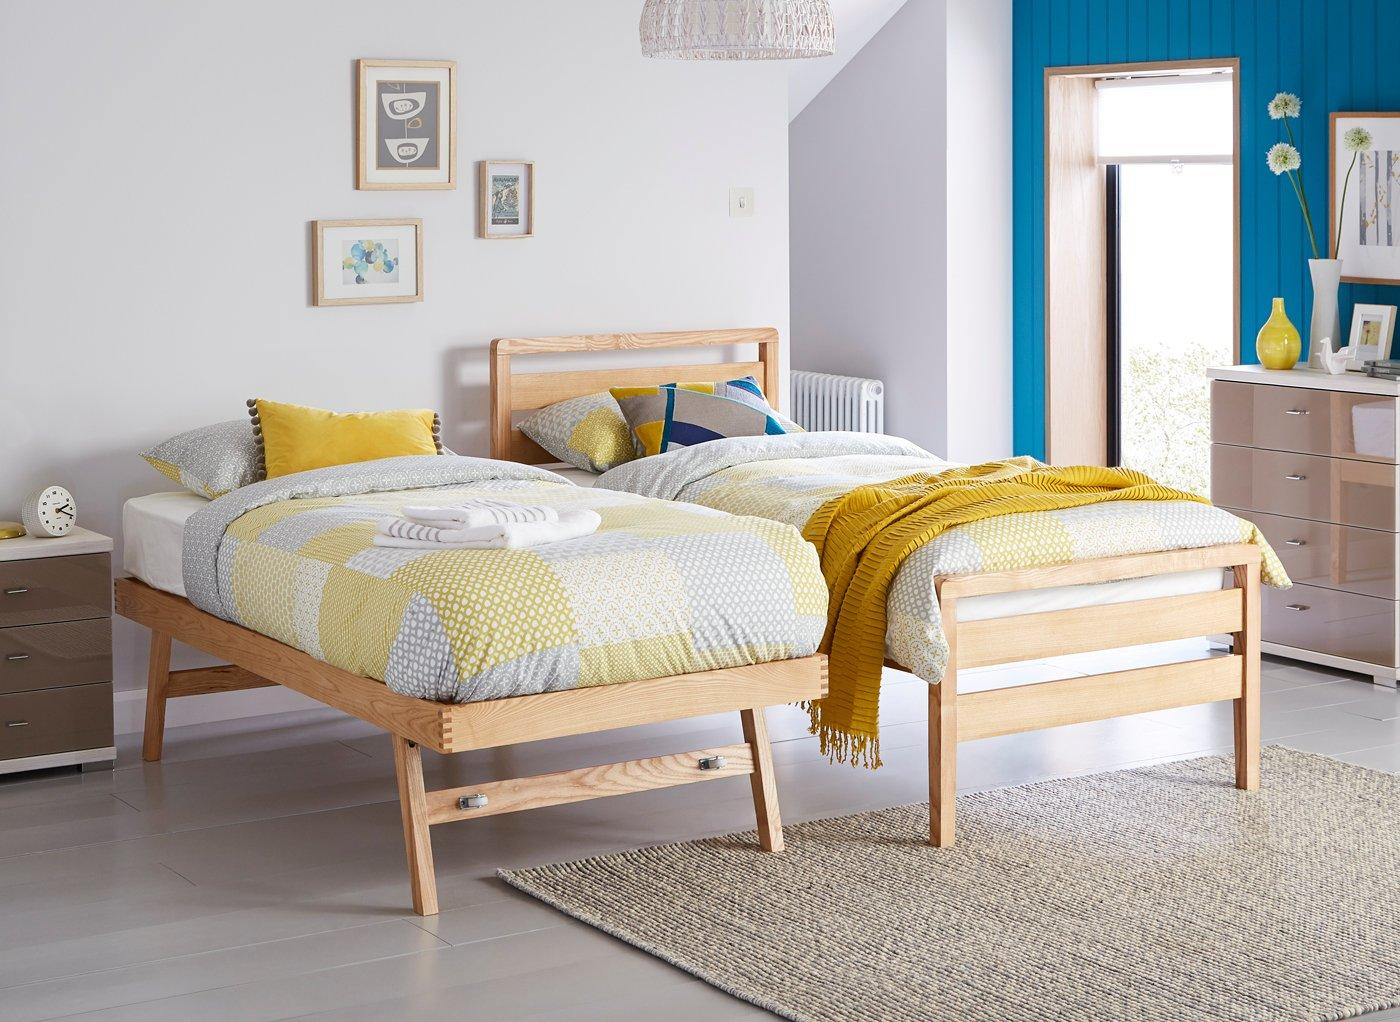 Dreams Woodstock Wooden Bed Frame & Guest Bed from £319